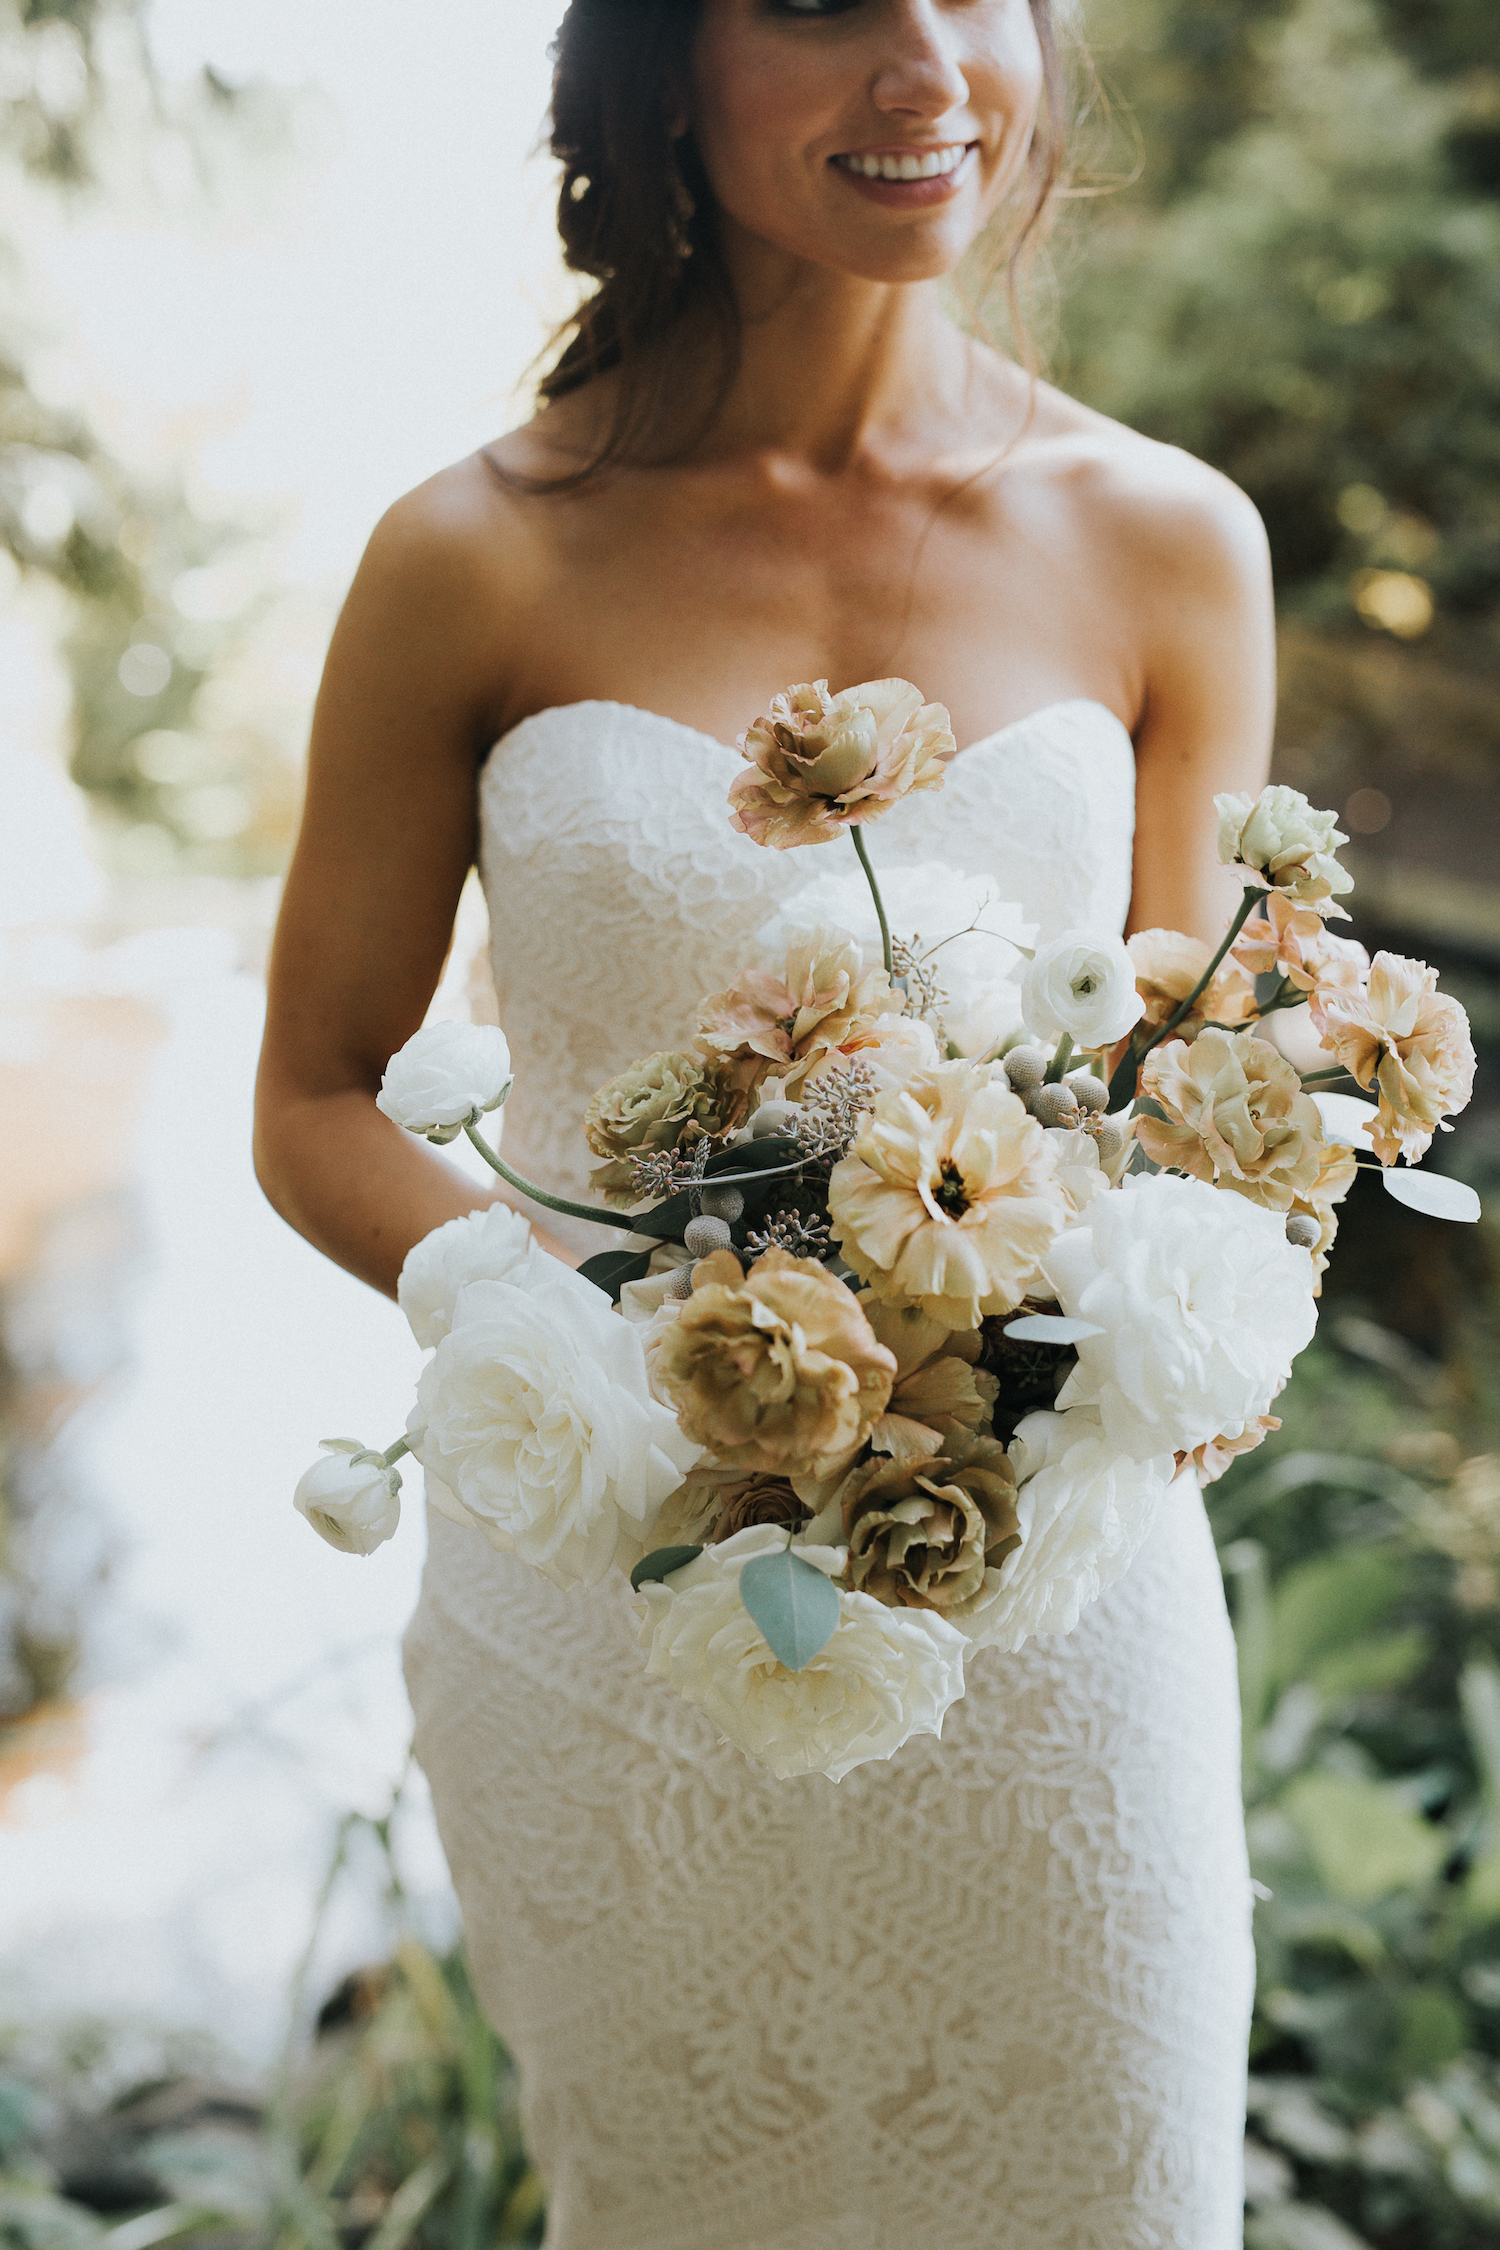 Wild Bloom Floral - Rachel Birkhofer Photography - Jessica and Phil - Real Wedding - Seattle 22.jpeg